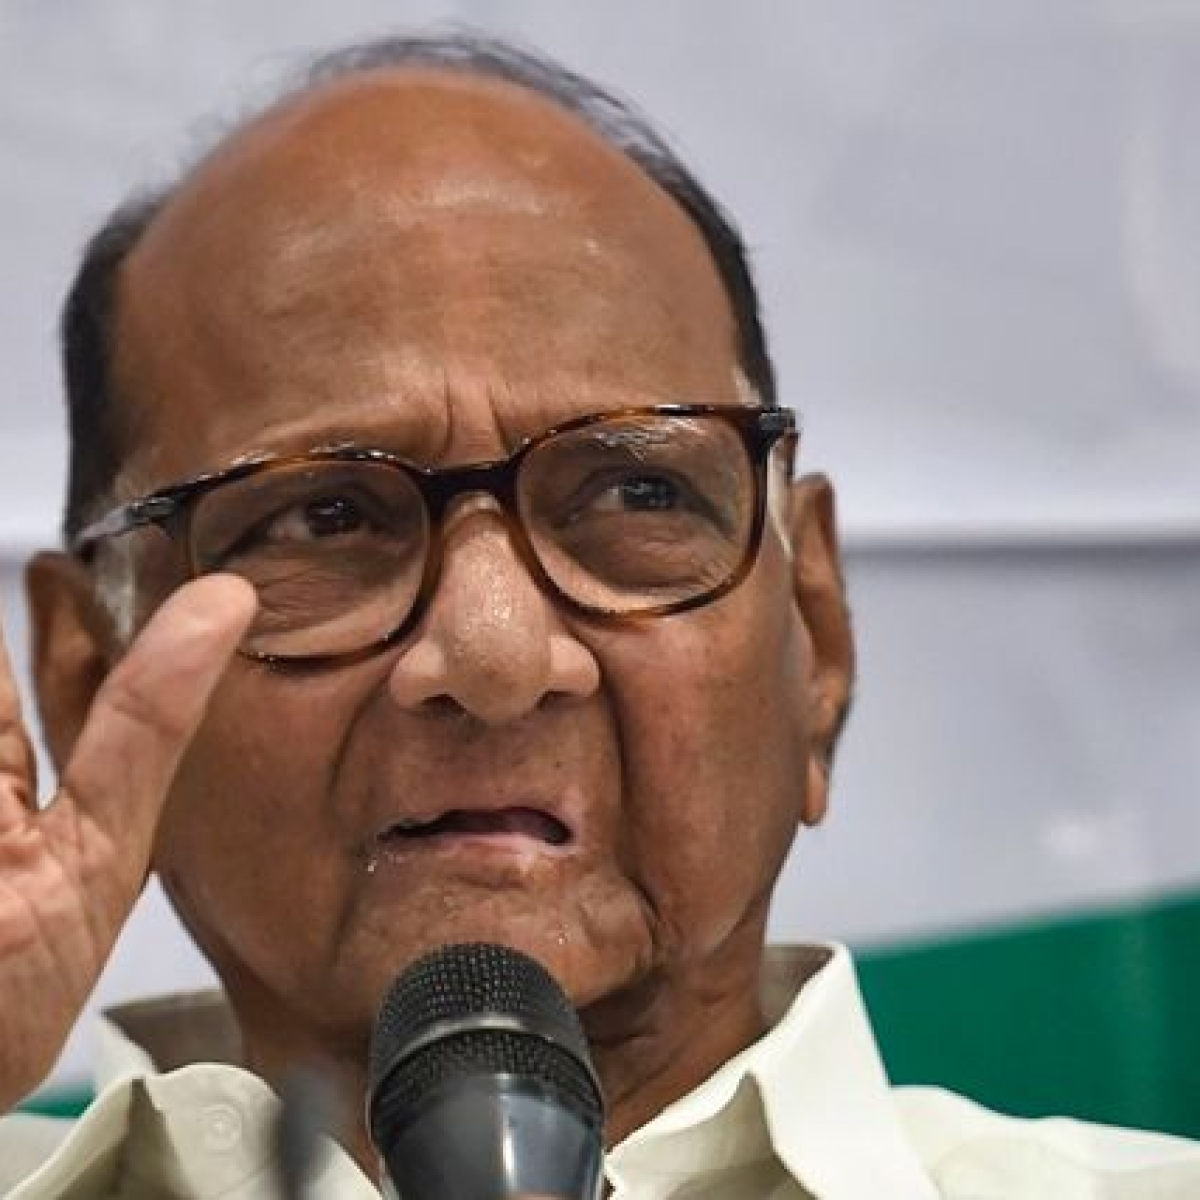 Farmers' protest: Amid ongoing agitation, NCP chief Sharad Pawar meets Left leaders